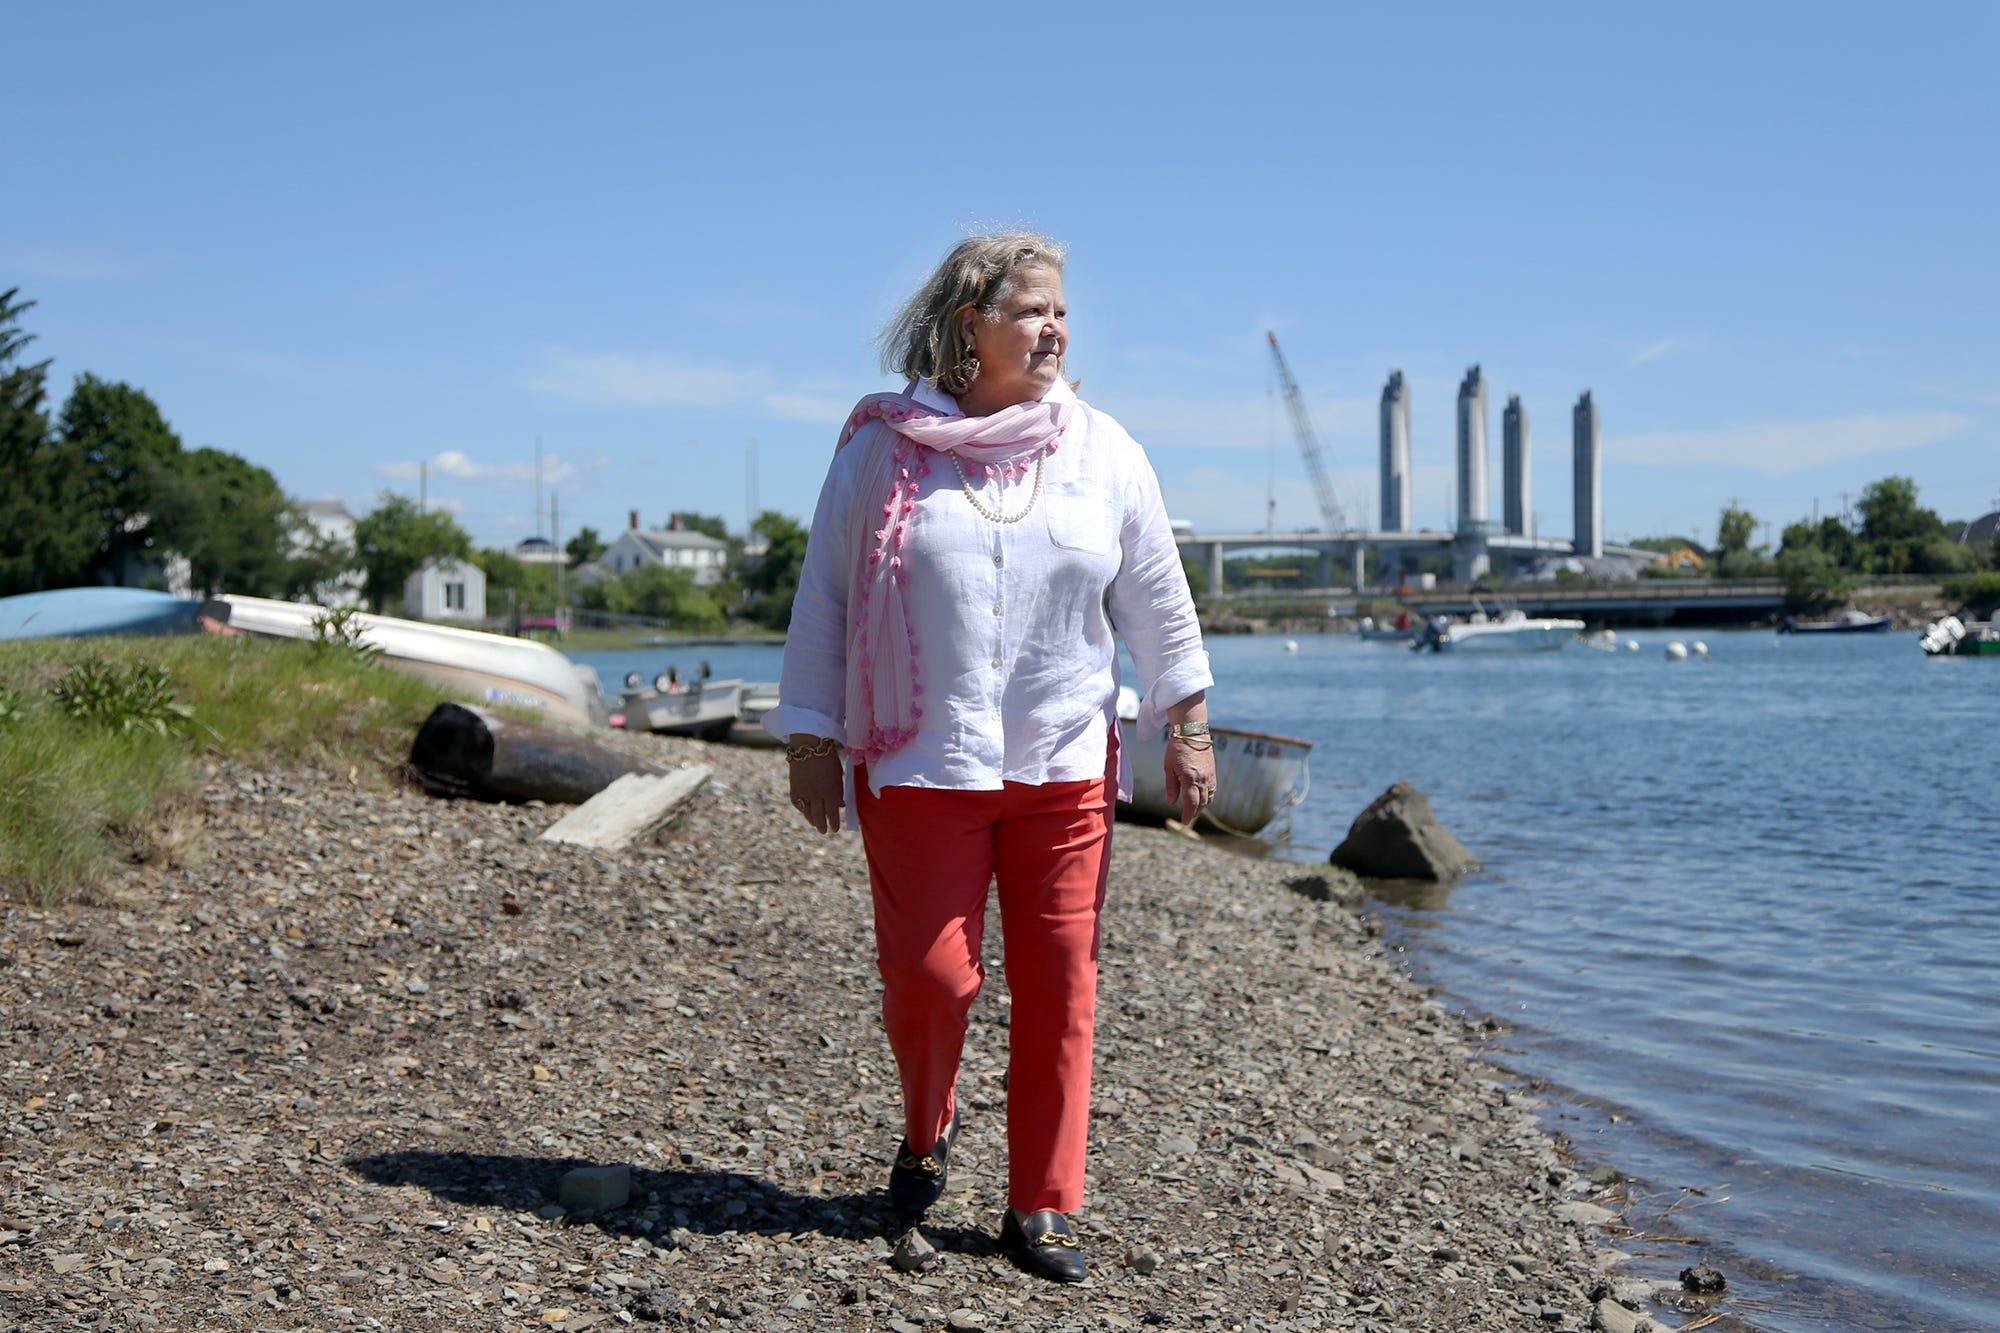 Portsmouth City Councilor Paige Trace, alongside North Mill Pond, believes developers are taking advantage of policies that do too much to benefit them and too little for the best interests of the city and its people.